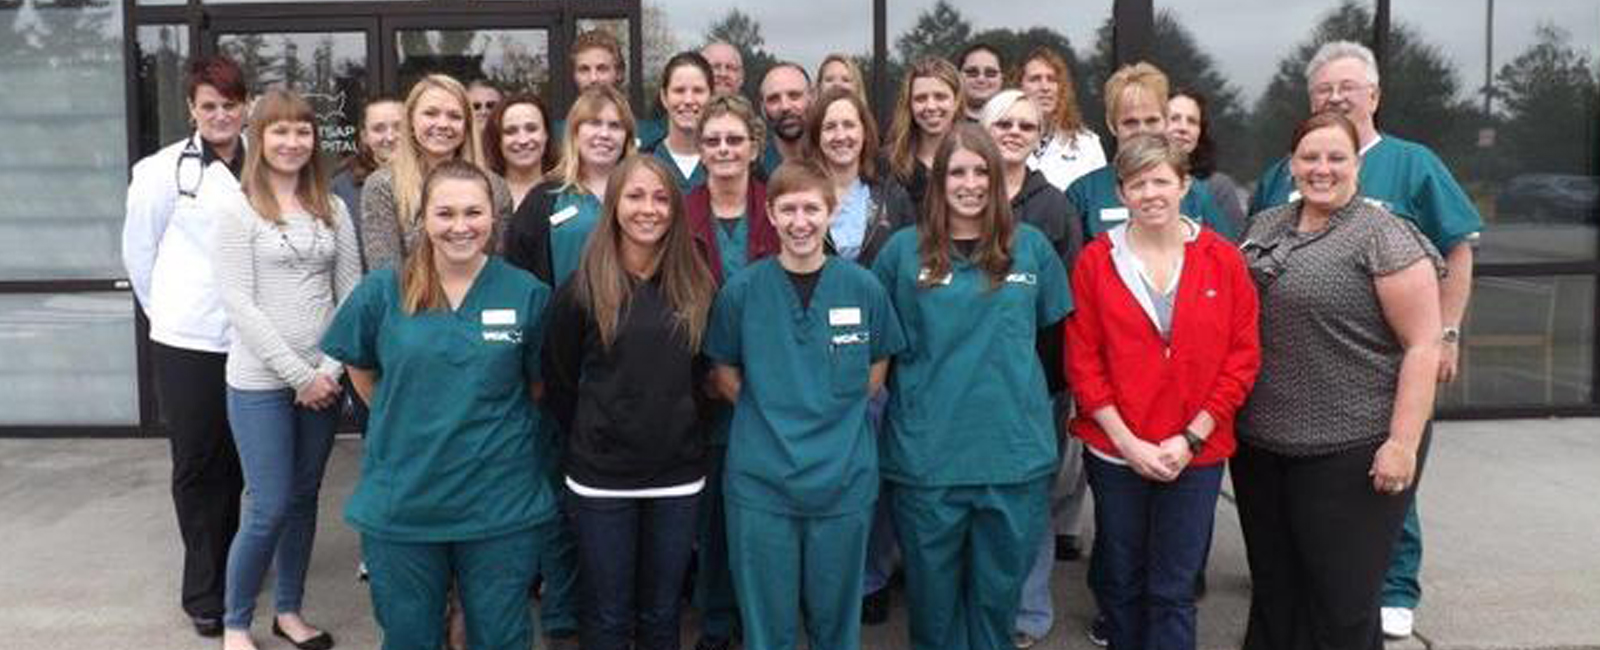 Homepage Team Picture of  VCA Central Kitsap Animal Hospital